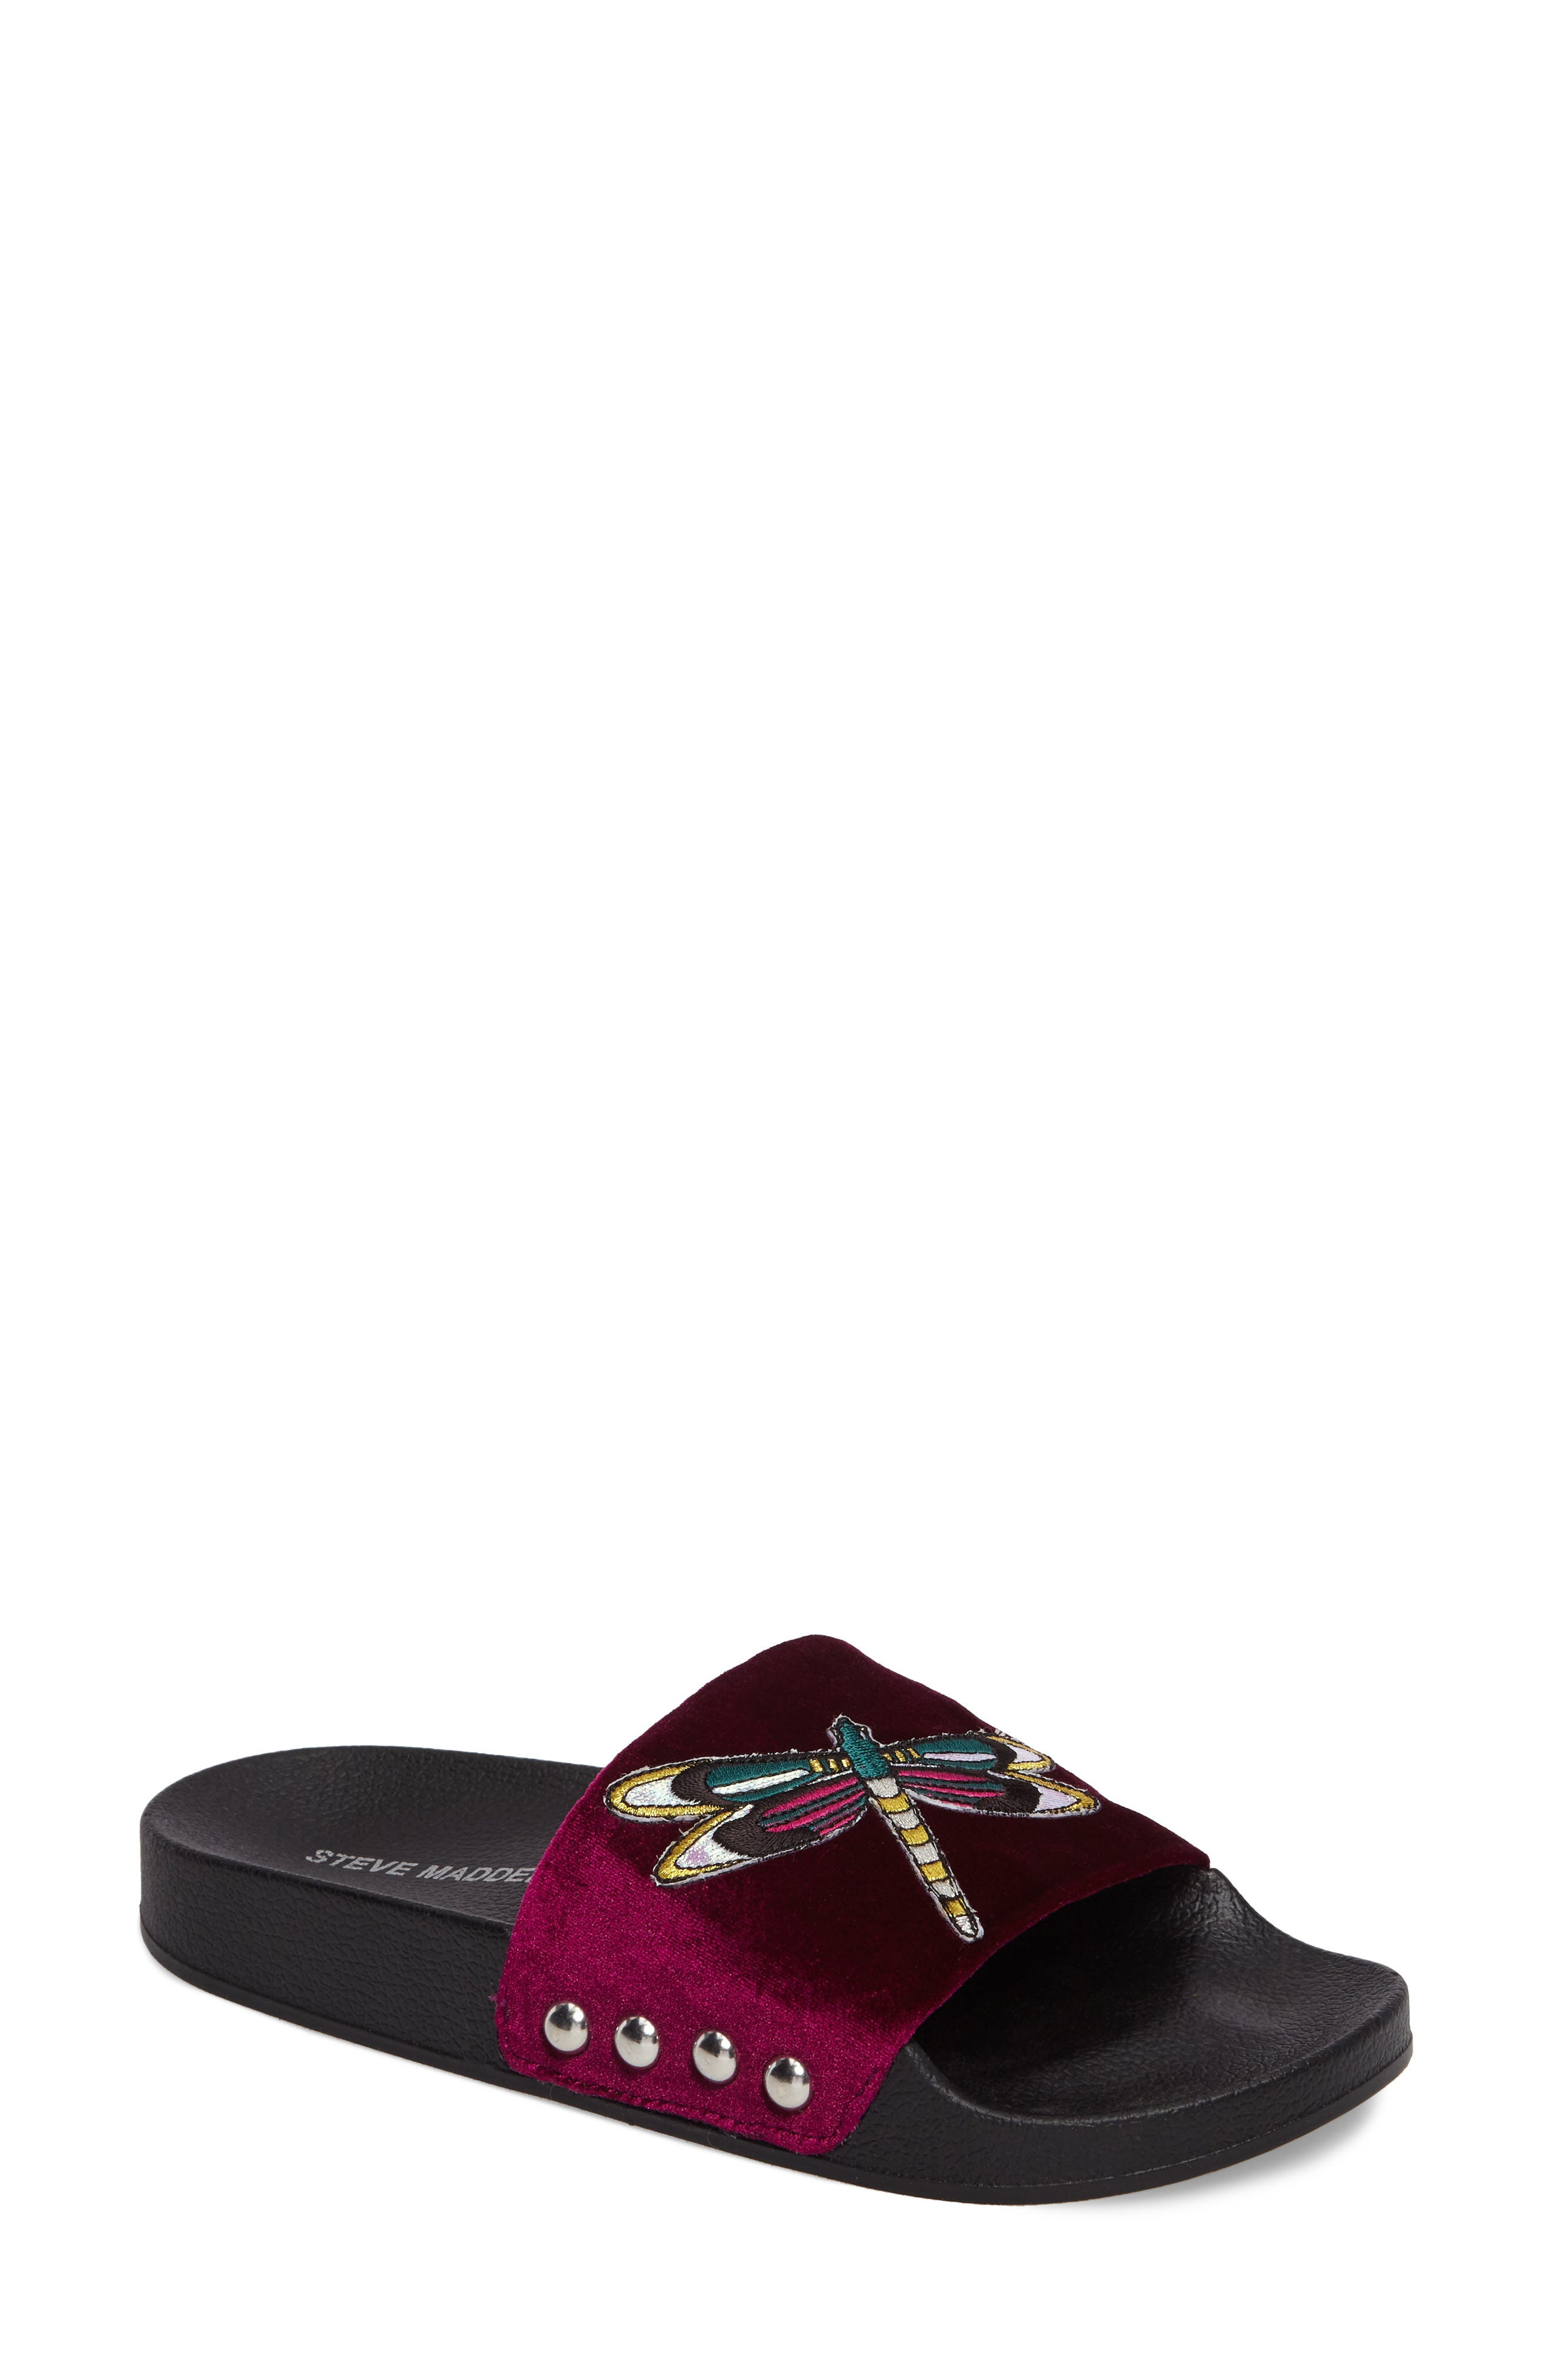 Steve Madden Patches Slide Sandal (Women)